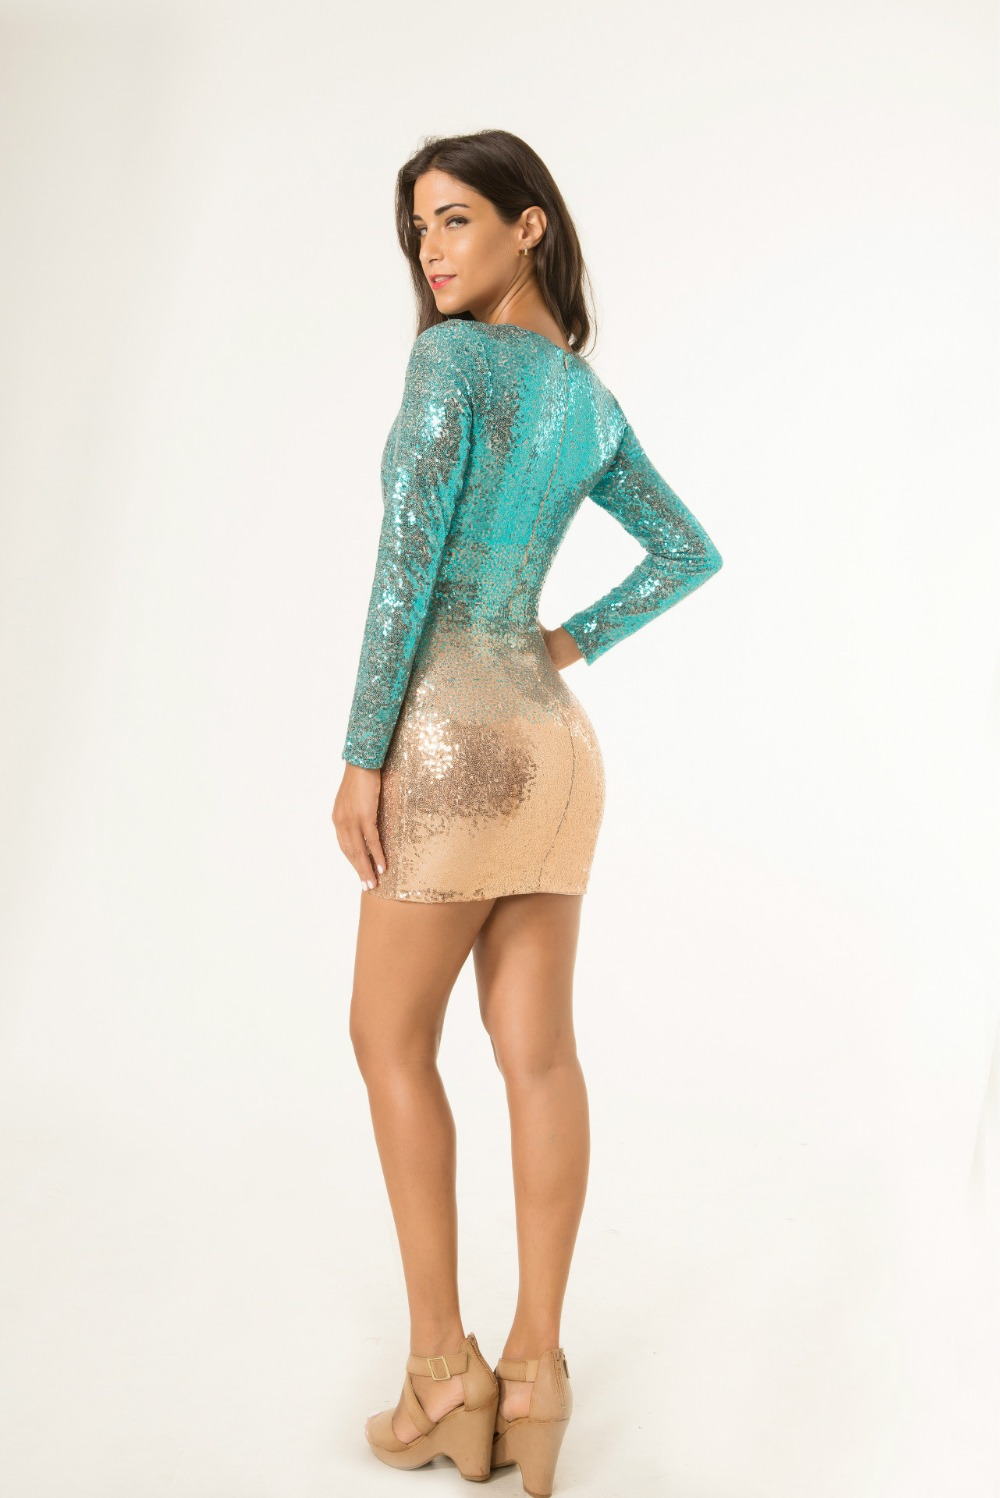 OMILKA 2017 Hot Autumn Women Long Sleeve O Neck Sequin Bodycon Dress Sexy  Gradient Blue Gold Glitter Club Mini Sequined Dress-in Dresses from Women s  ... c0ecadab4bc3